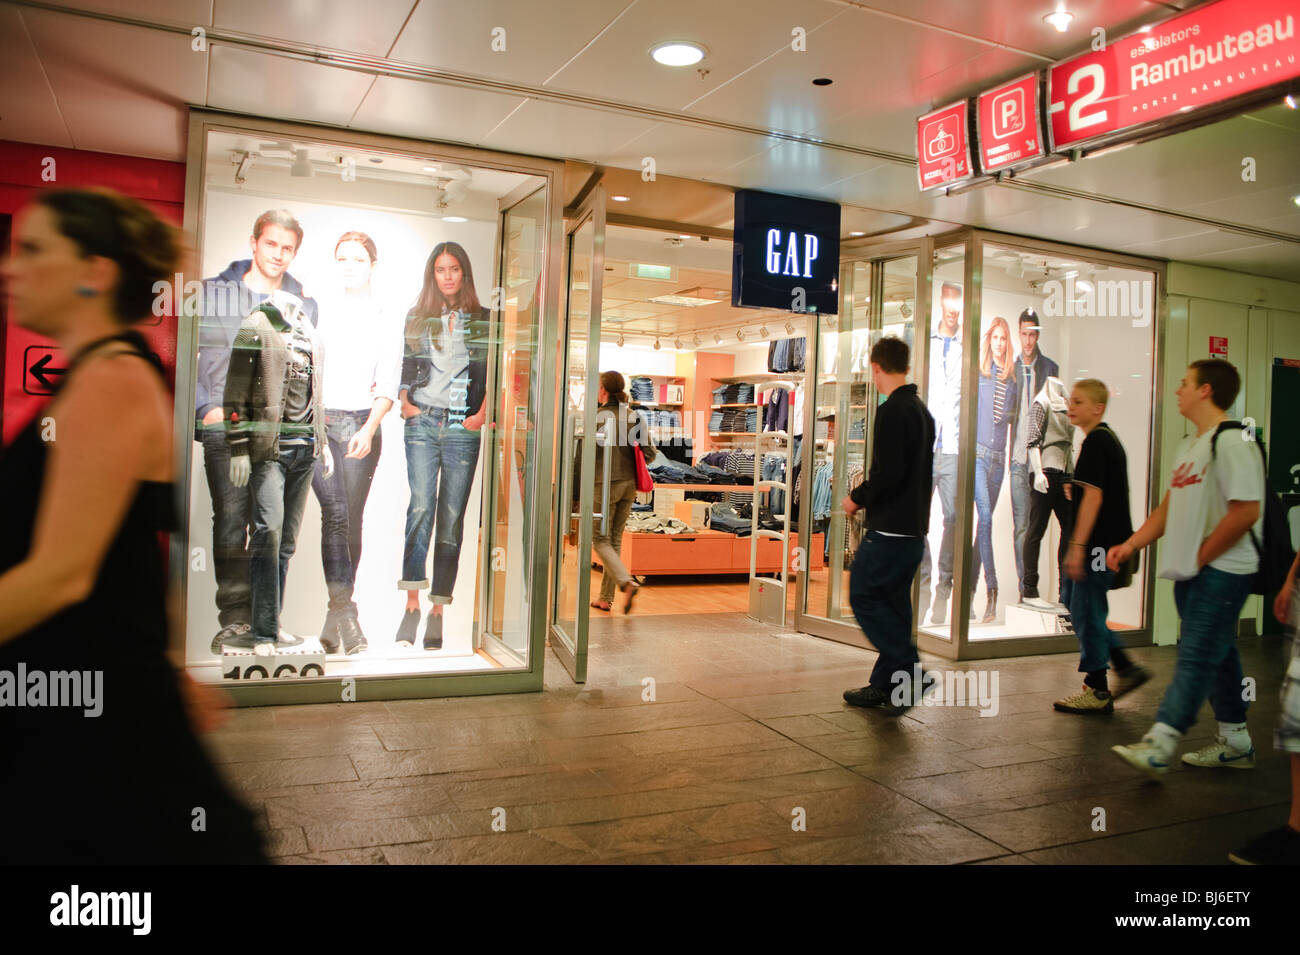 Paris france shopping the gap store at les halles le f - Les halles paris shopping ...